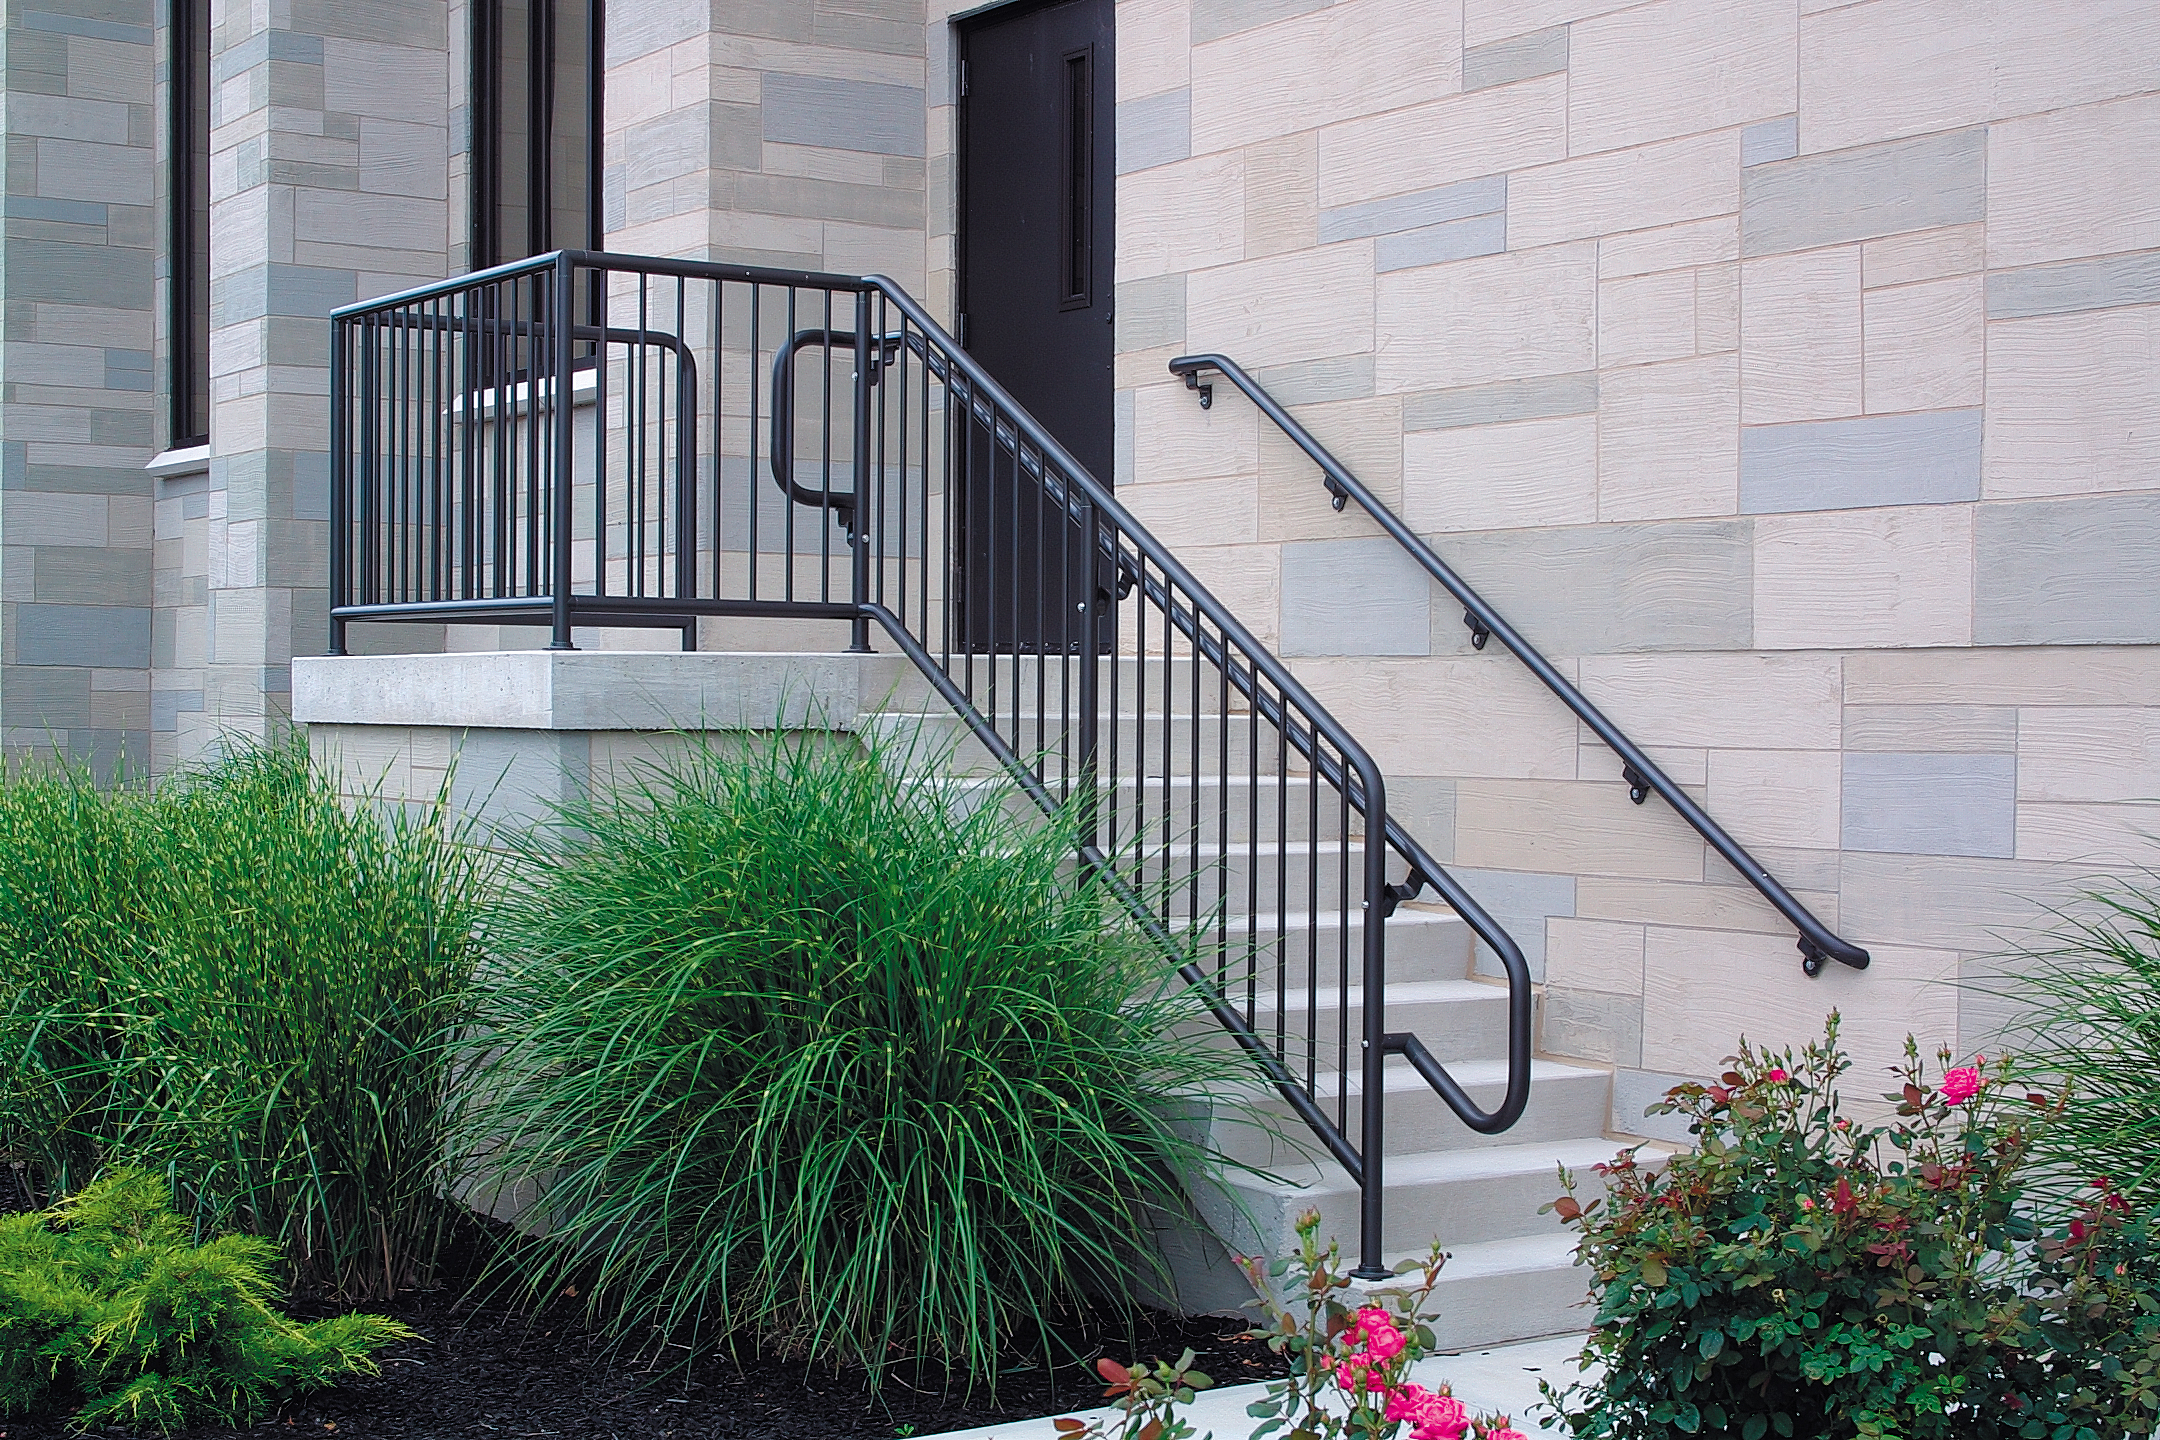 Pipe picket railing situated to assist parishioners travers stairs and enter an Ohio church